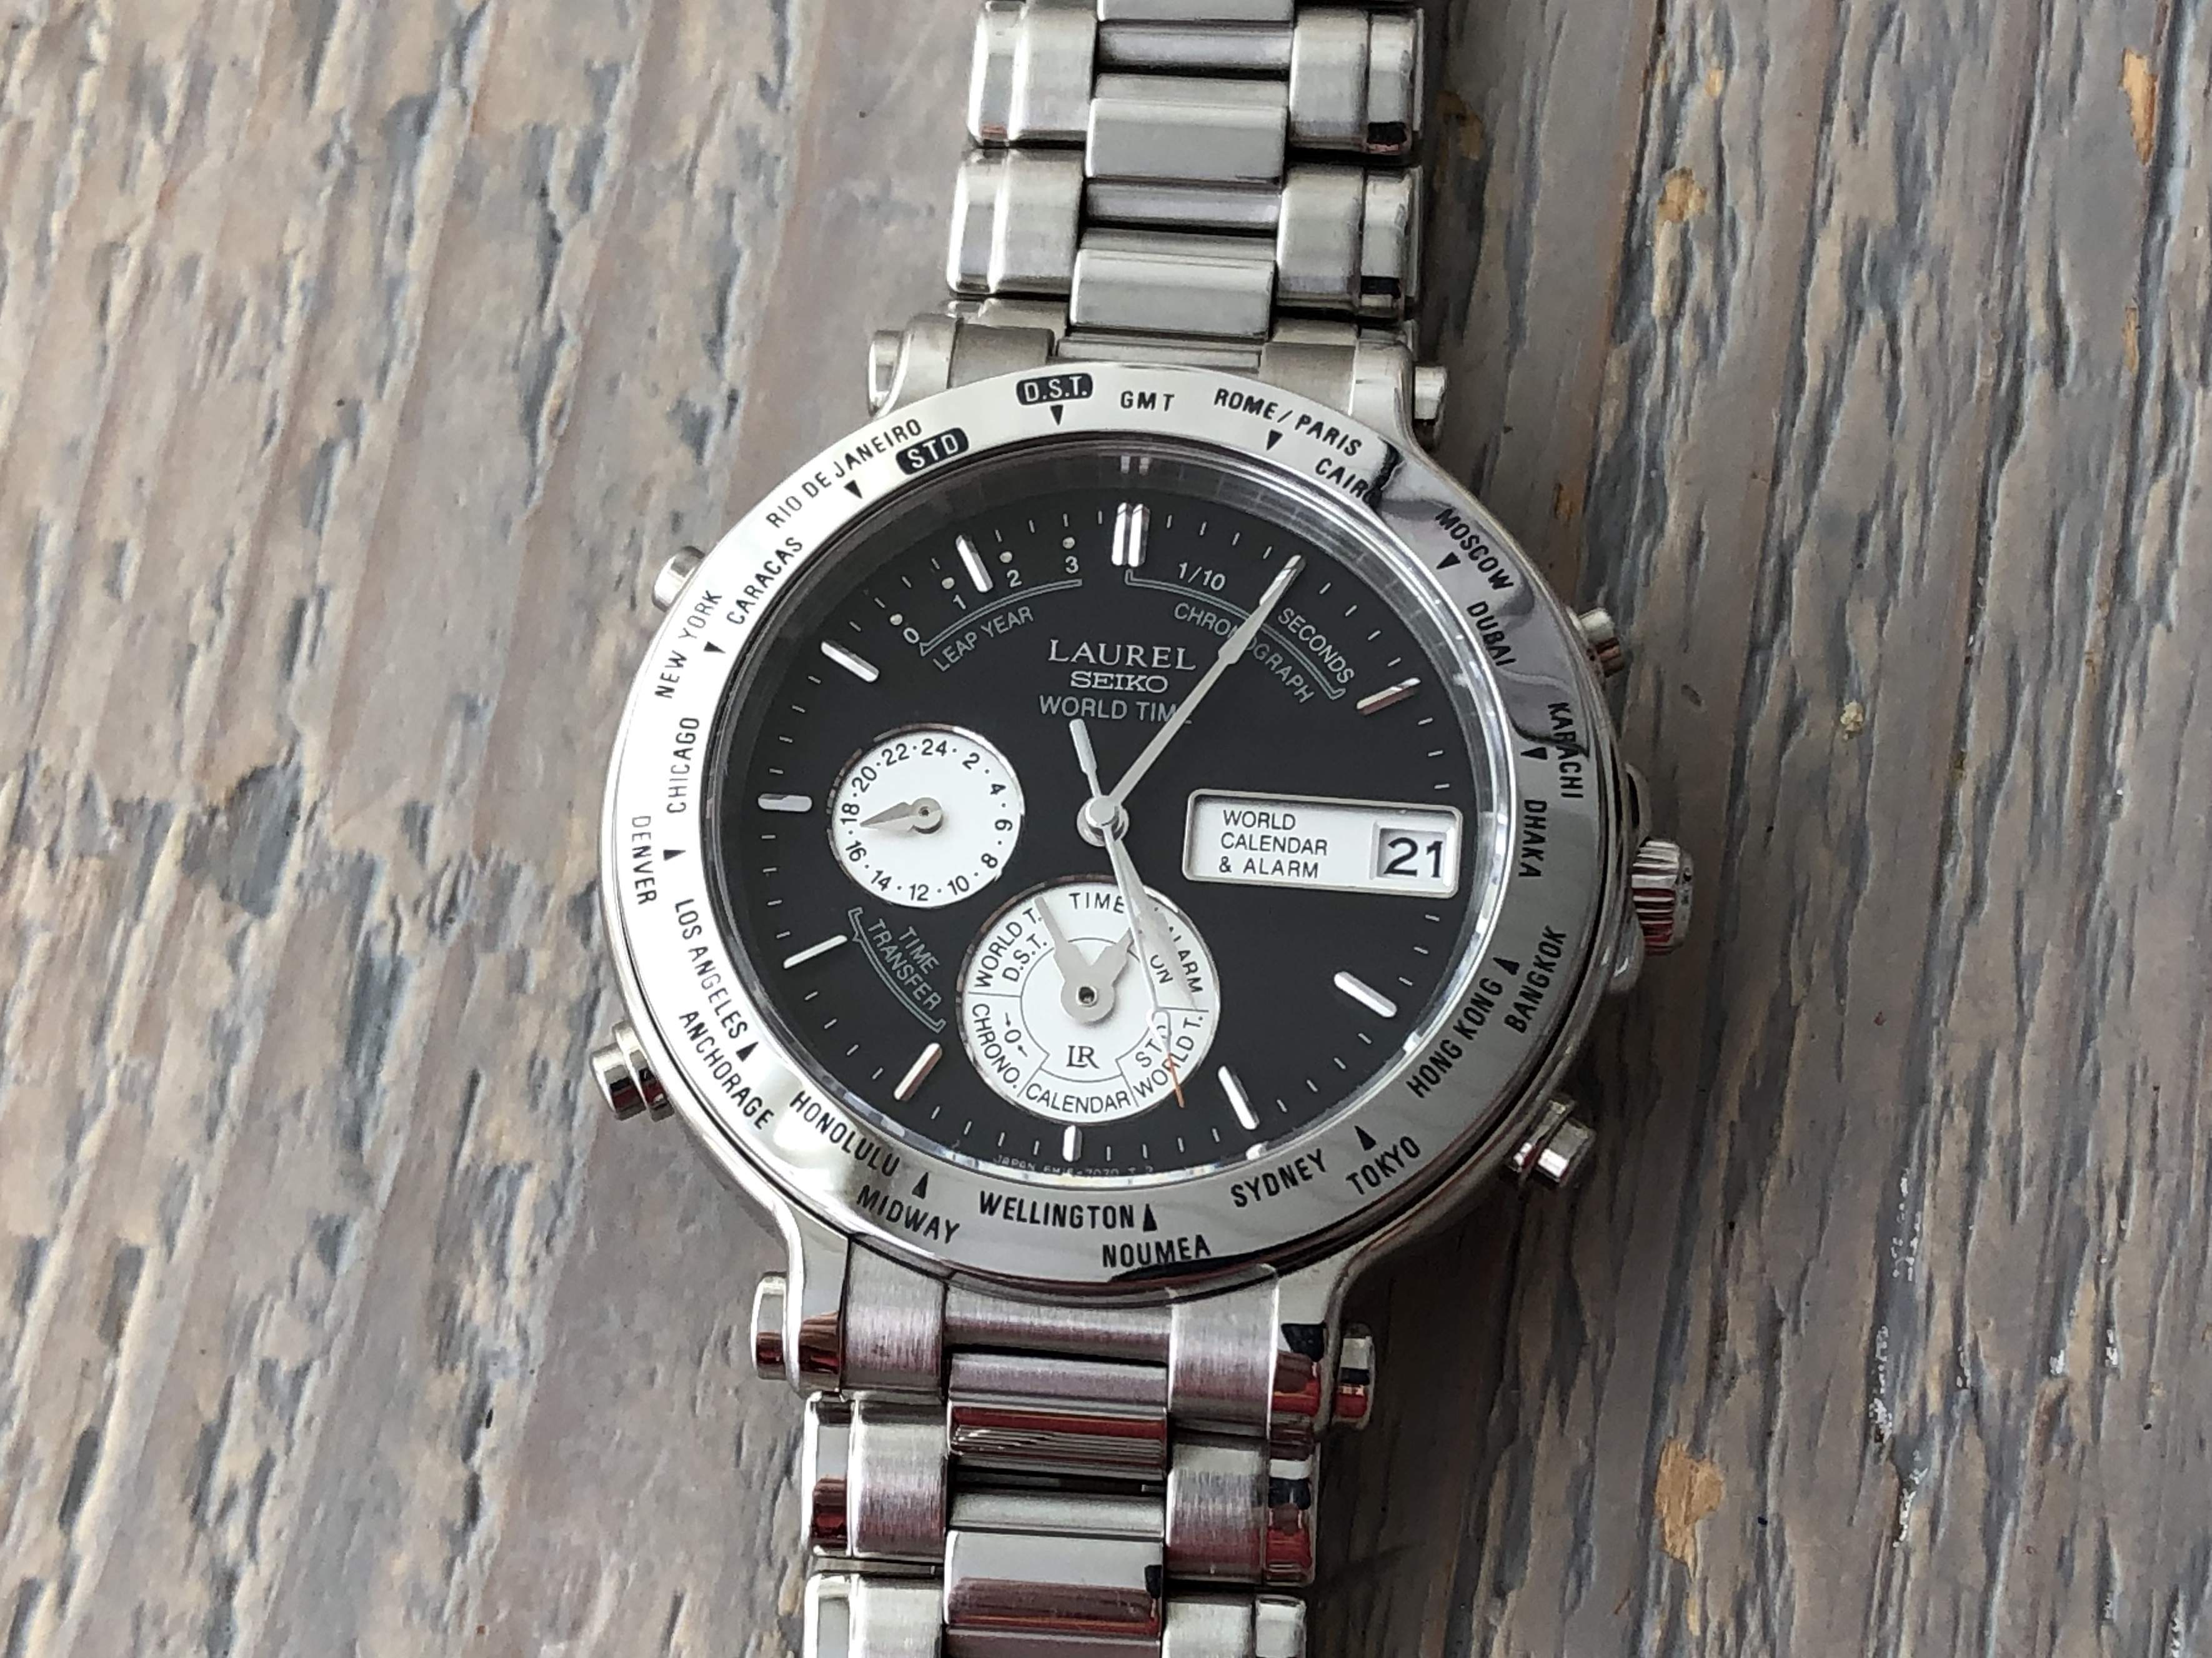 Seiko Laurel World Time 6M15-7040 (For sale)